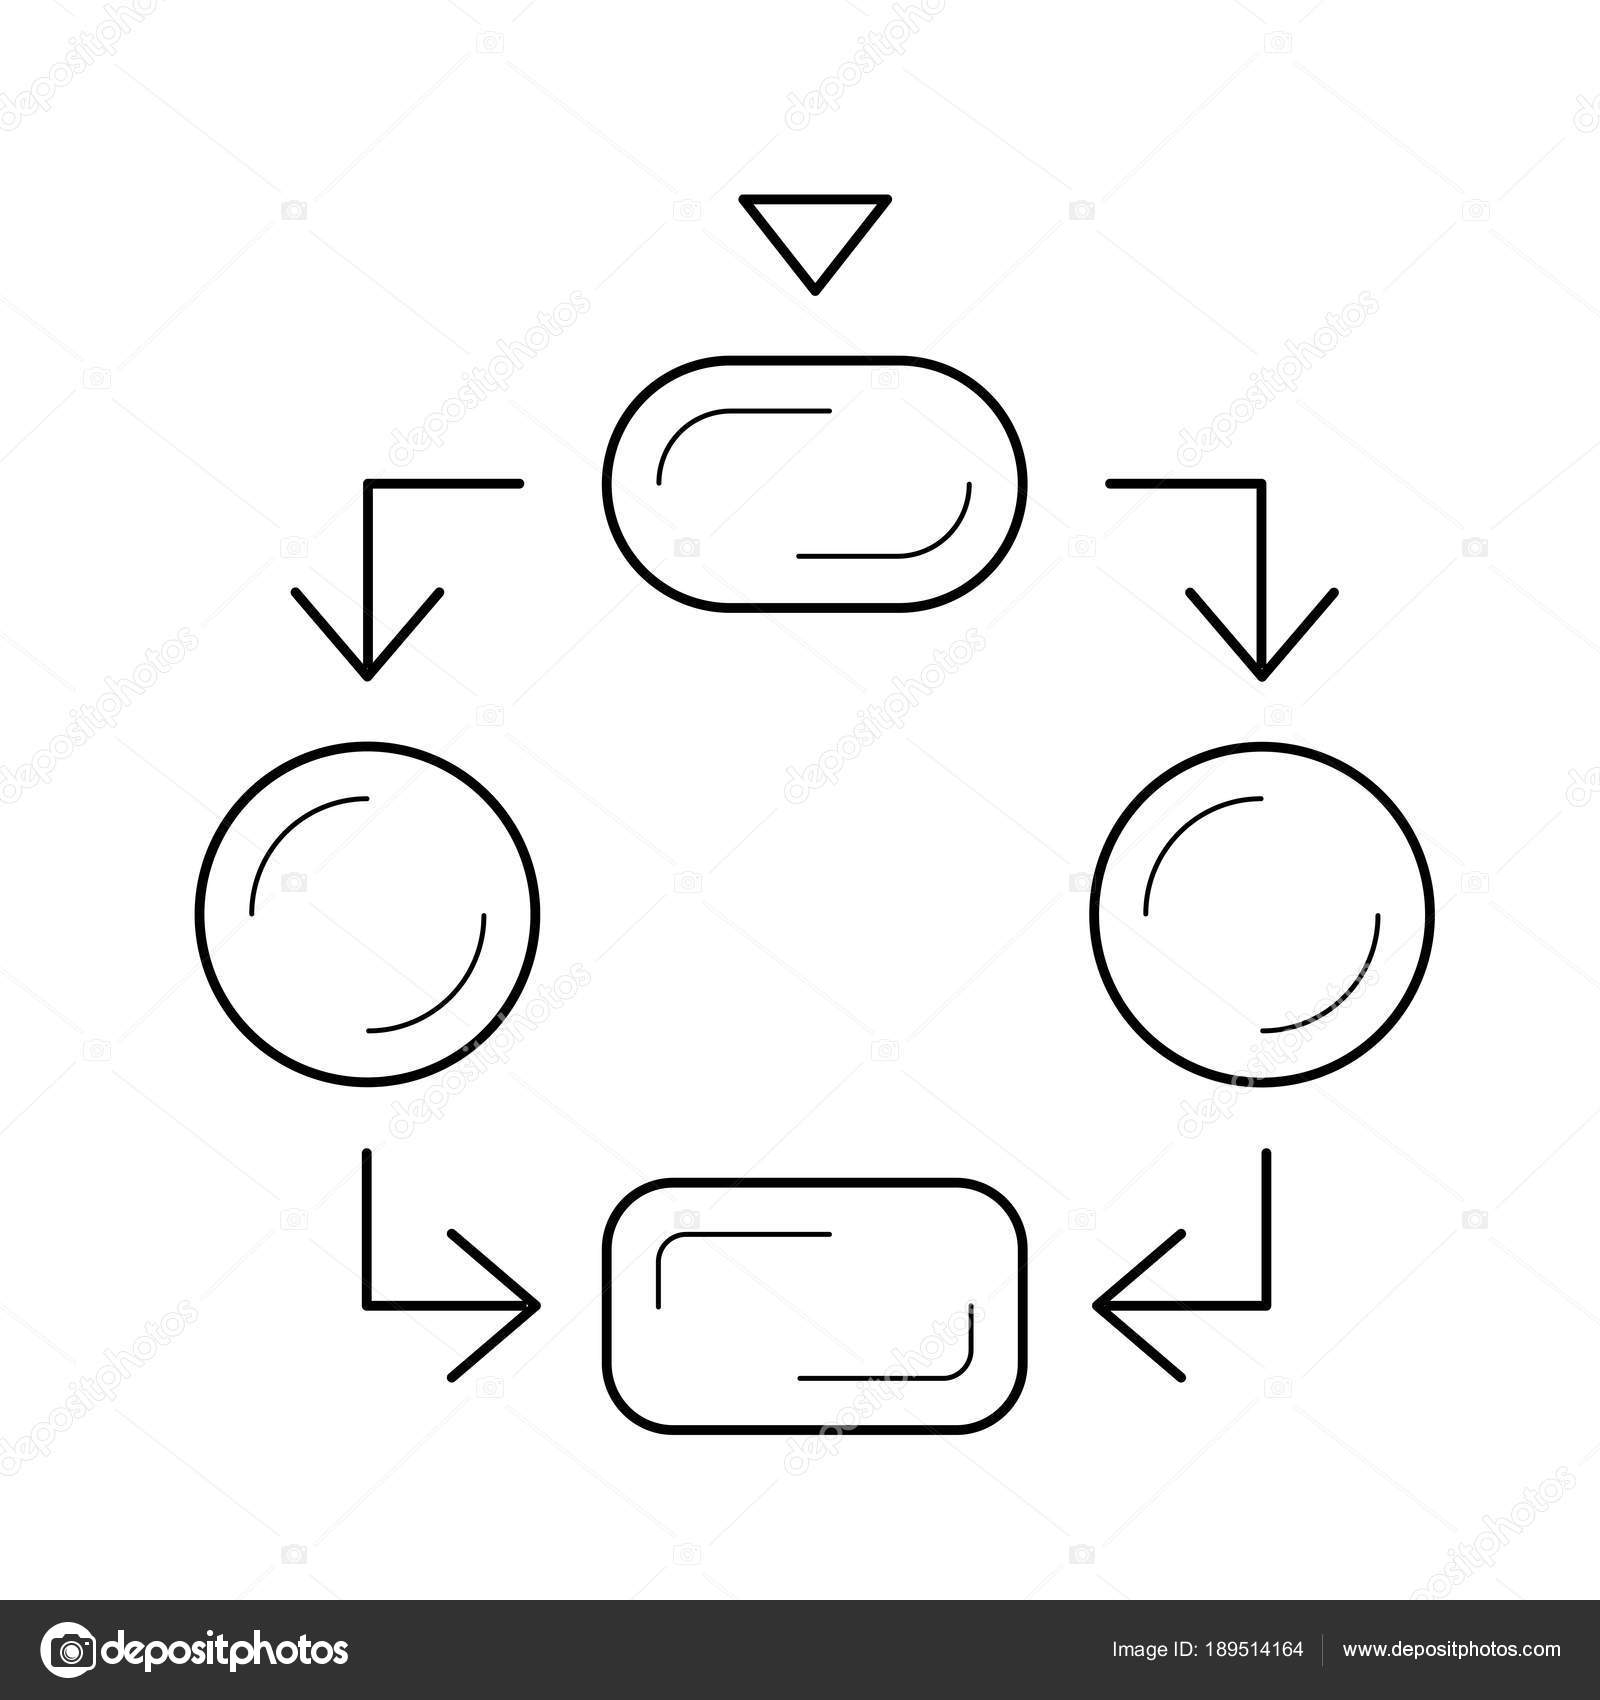 hight resolution of flow diagram line icon stock vector